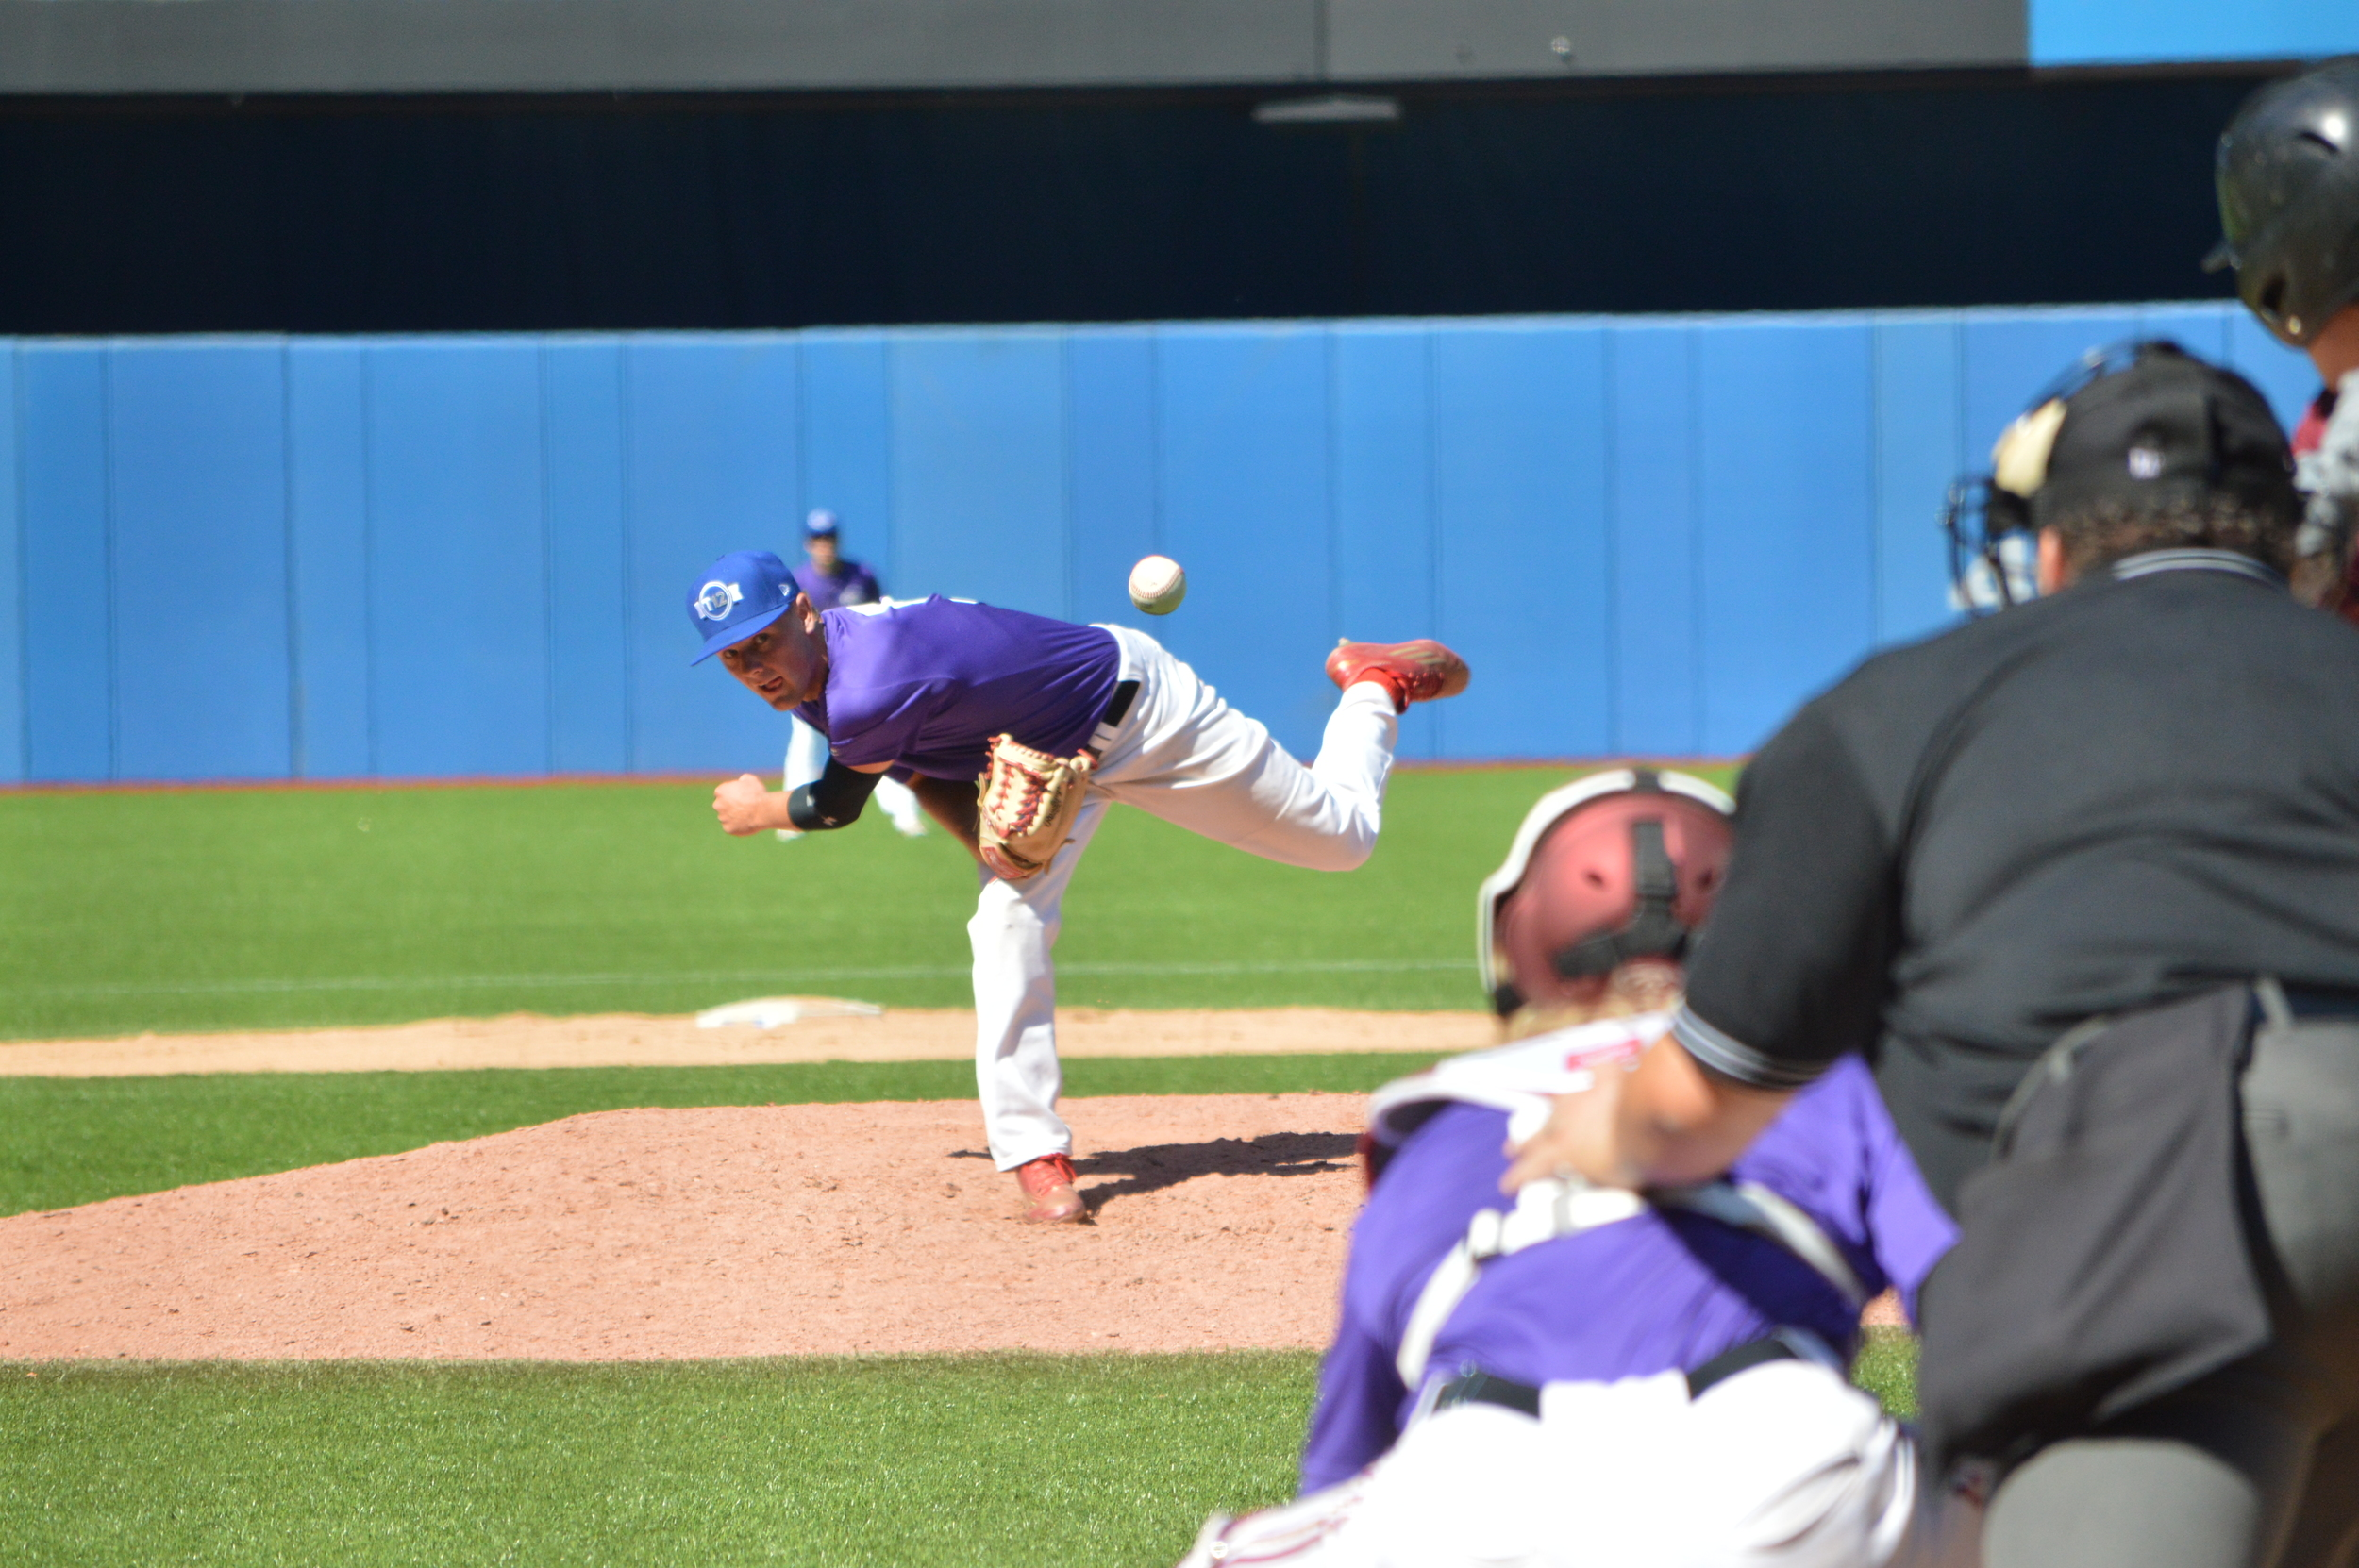 Prairies Purple starter Brody Frerichs (Muenster, Sask.) of the Meunster Red Sox, finishes his delivery against Atlantic Maroon. Photo Credit: George Redak